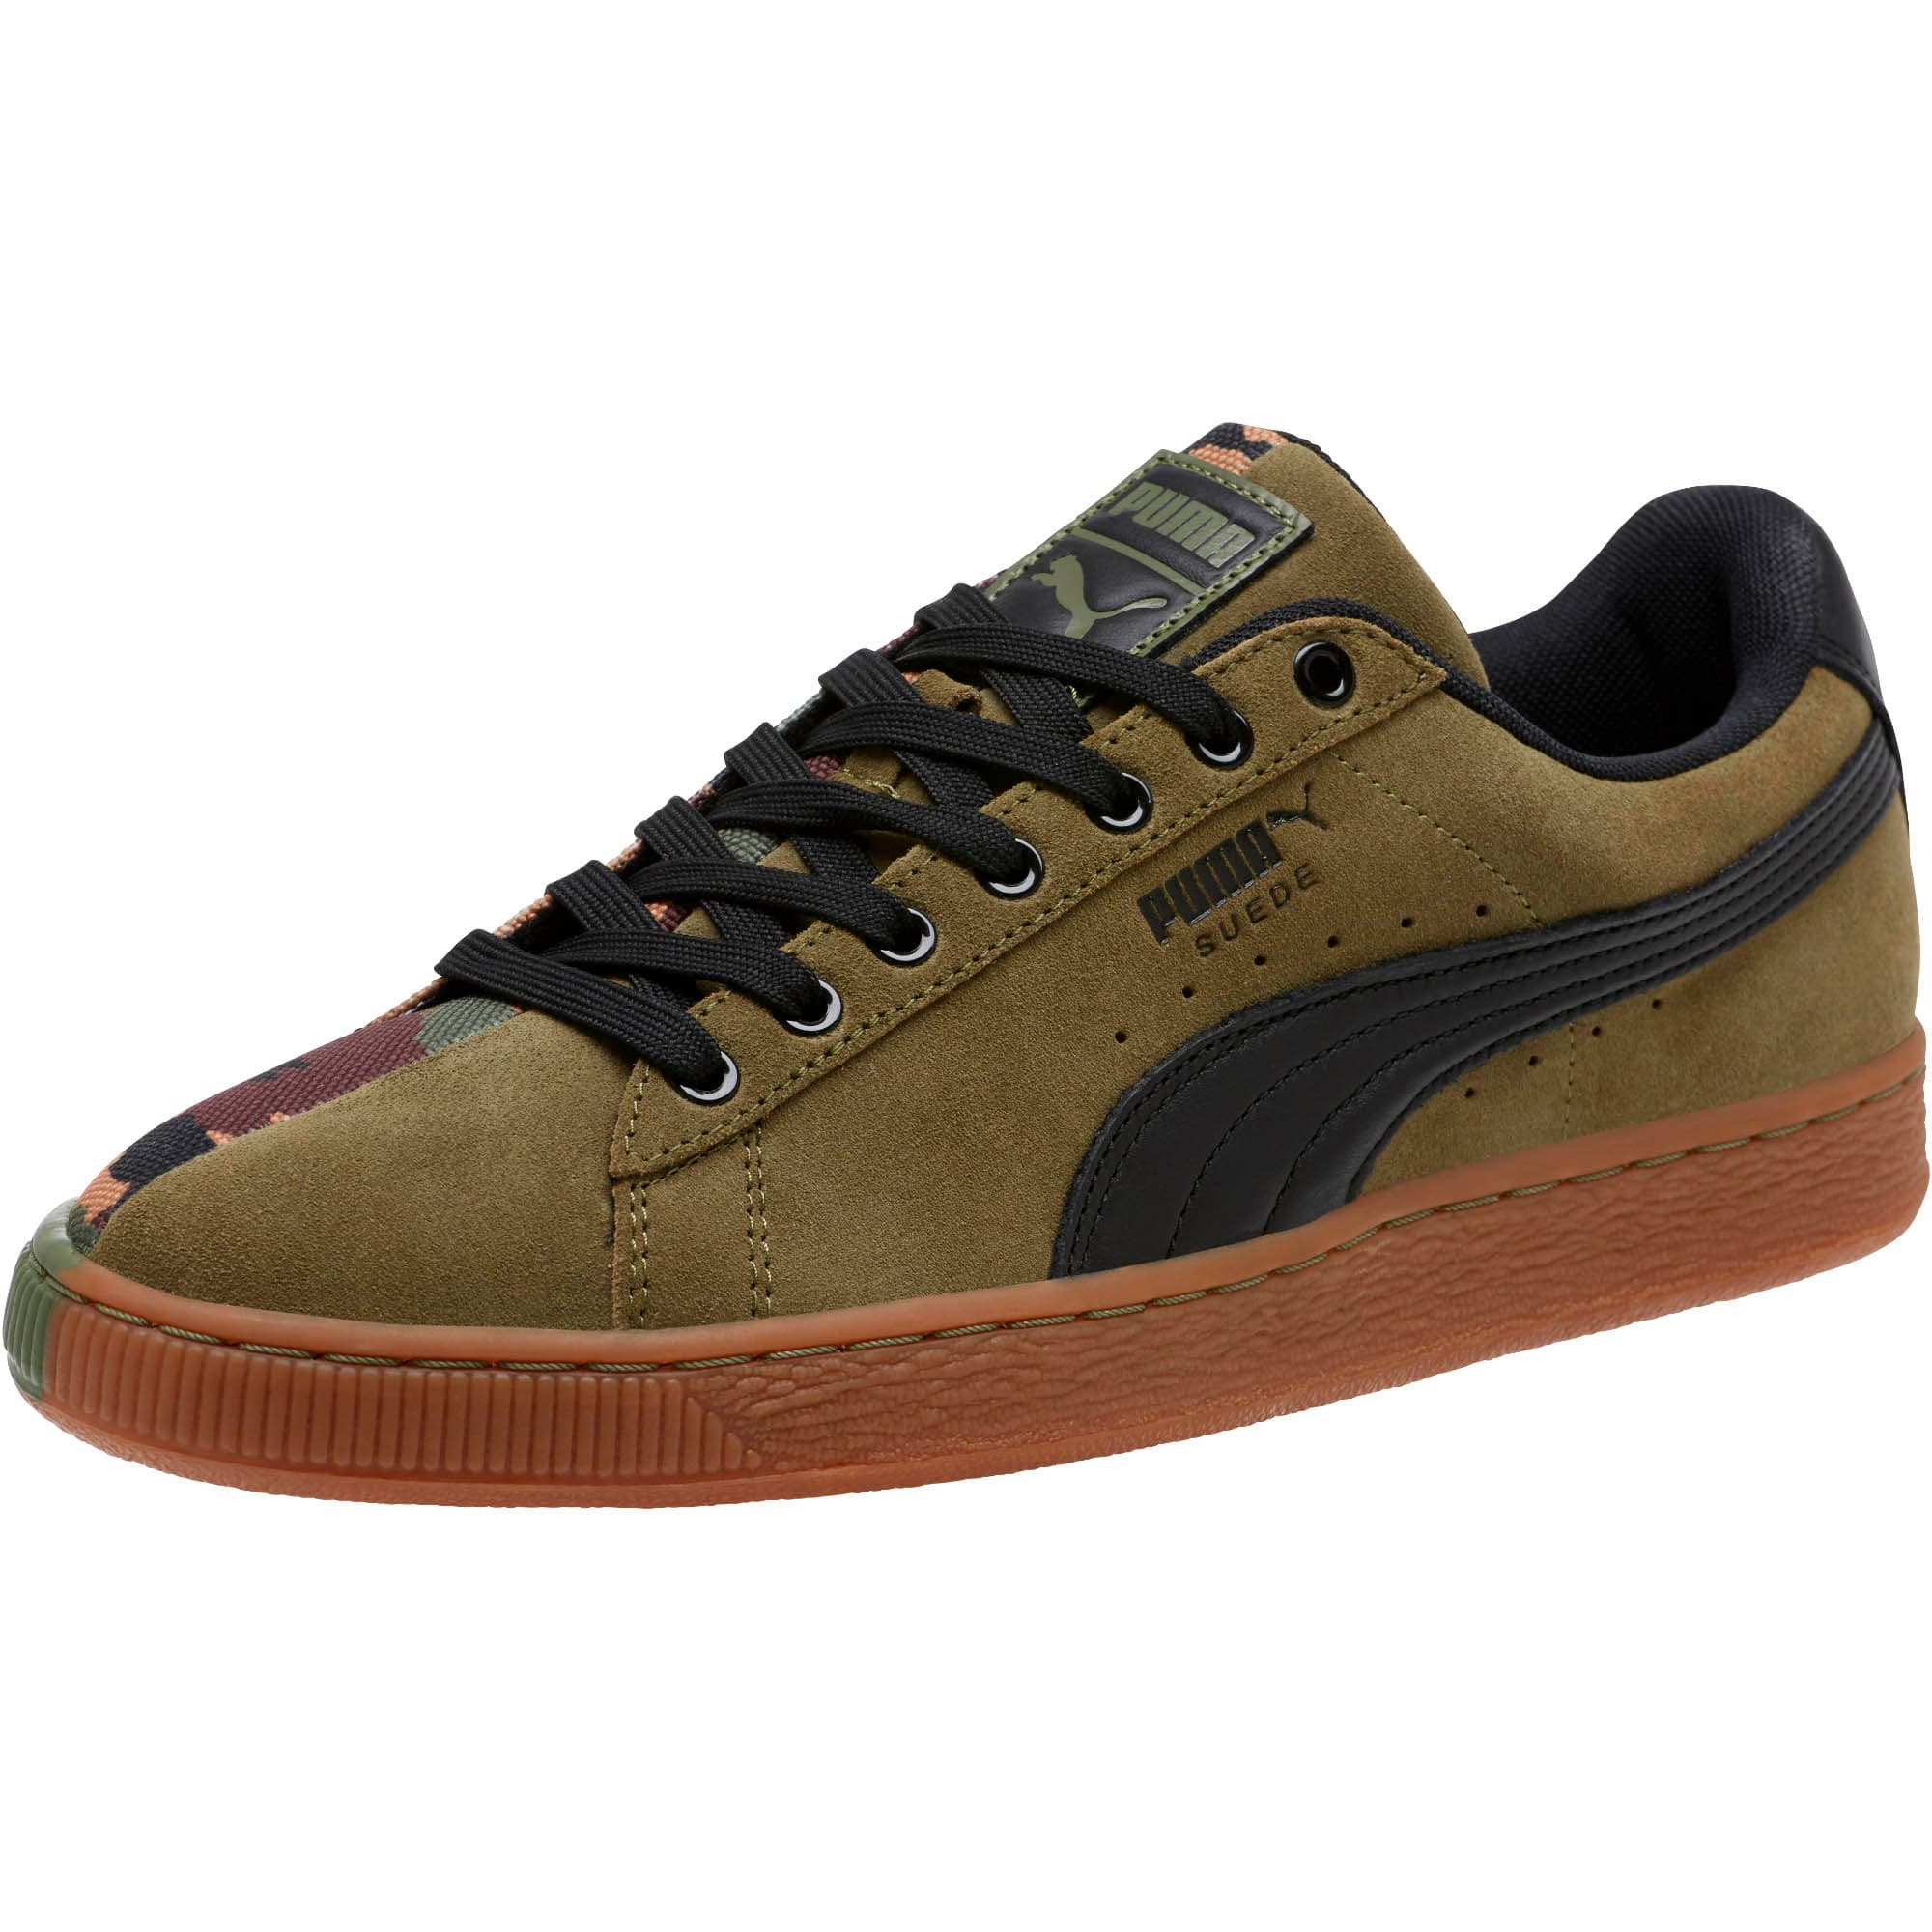 Suede SP Sneakers, Burnt Olive-Puma Black, large